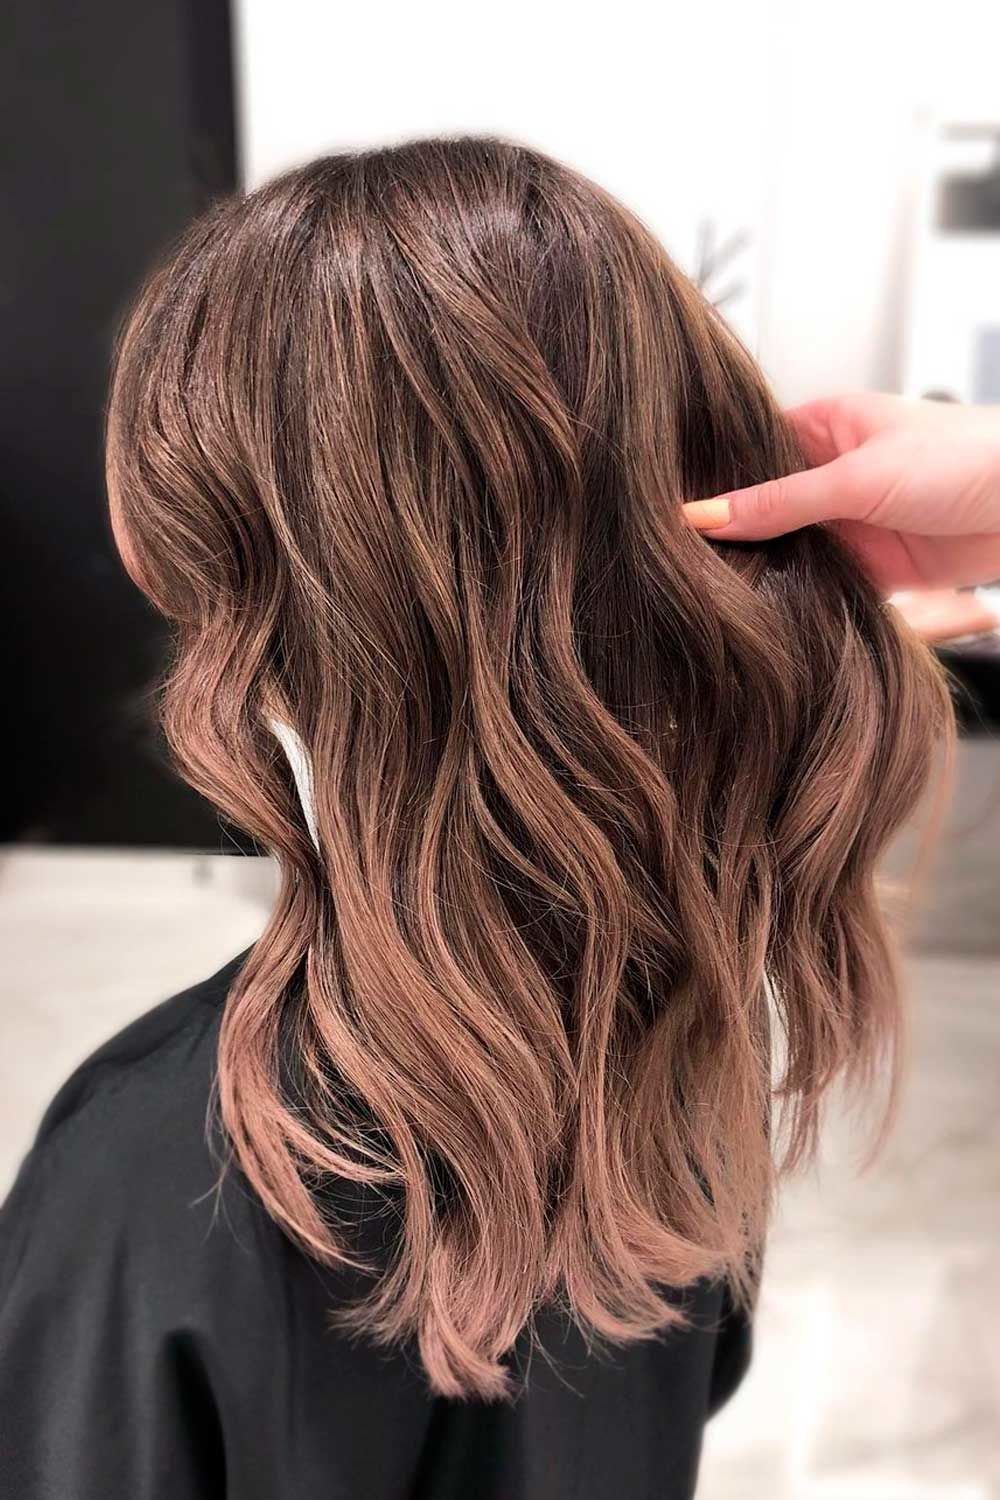 Chiseled Chic Layers, heart shaped face haircut, heart shaped face hairstyles, best hair for heart shaped face